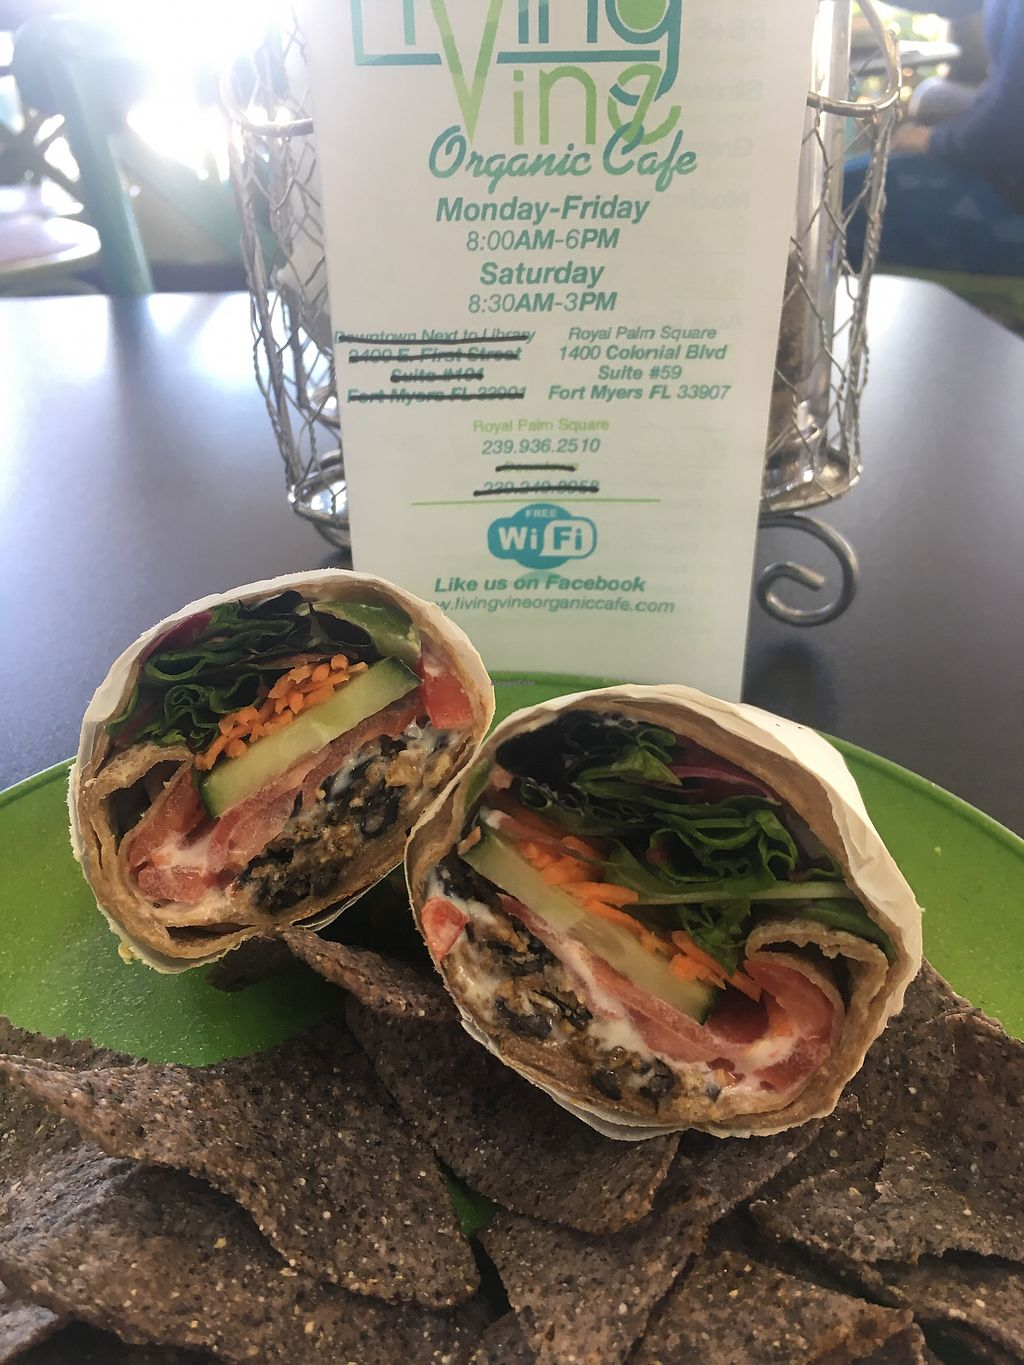 """Photo of Living Vine Organic Cafe  by <a href=""""/members/profile/EBercaw"""">EBercaw</a> <br/>Black bean burger wrap with garlic herb aioli <br/> April 16, 2018  - <a href='/contact/abuse/image/83720/386785'>Report</a>"""